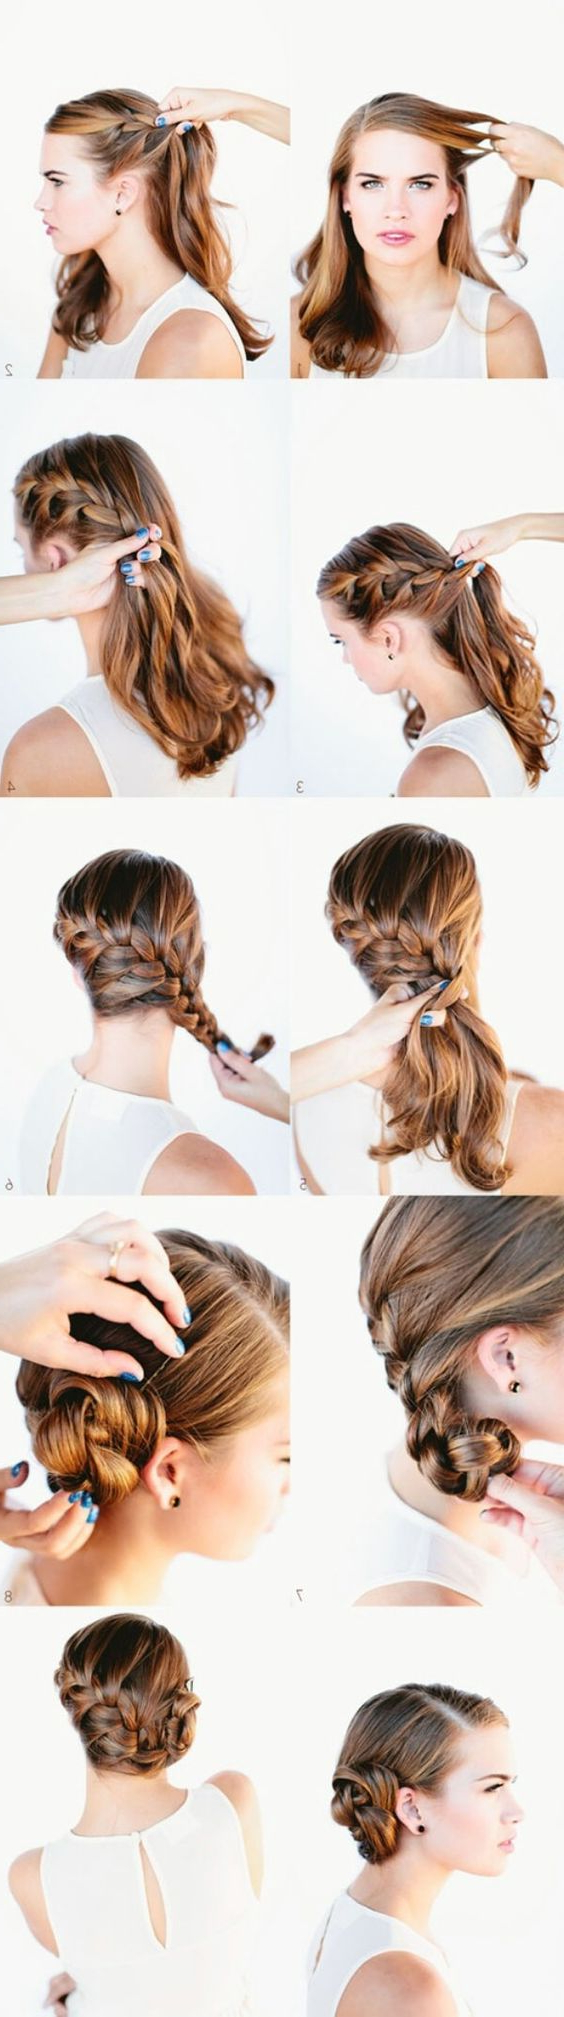 21 Tutorials For Styling Wrap Around Braids – Pretty Designs Within Preferred Braided And Wrapped Hairstyles (View 6 of 20)